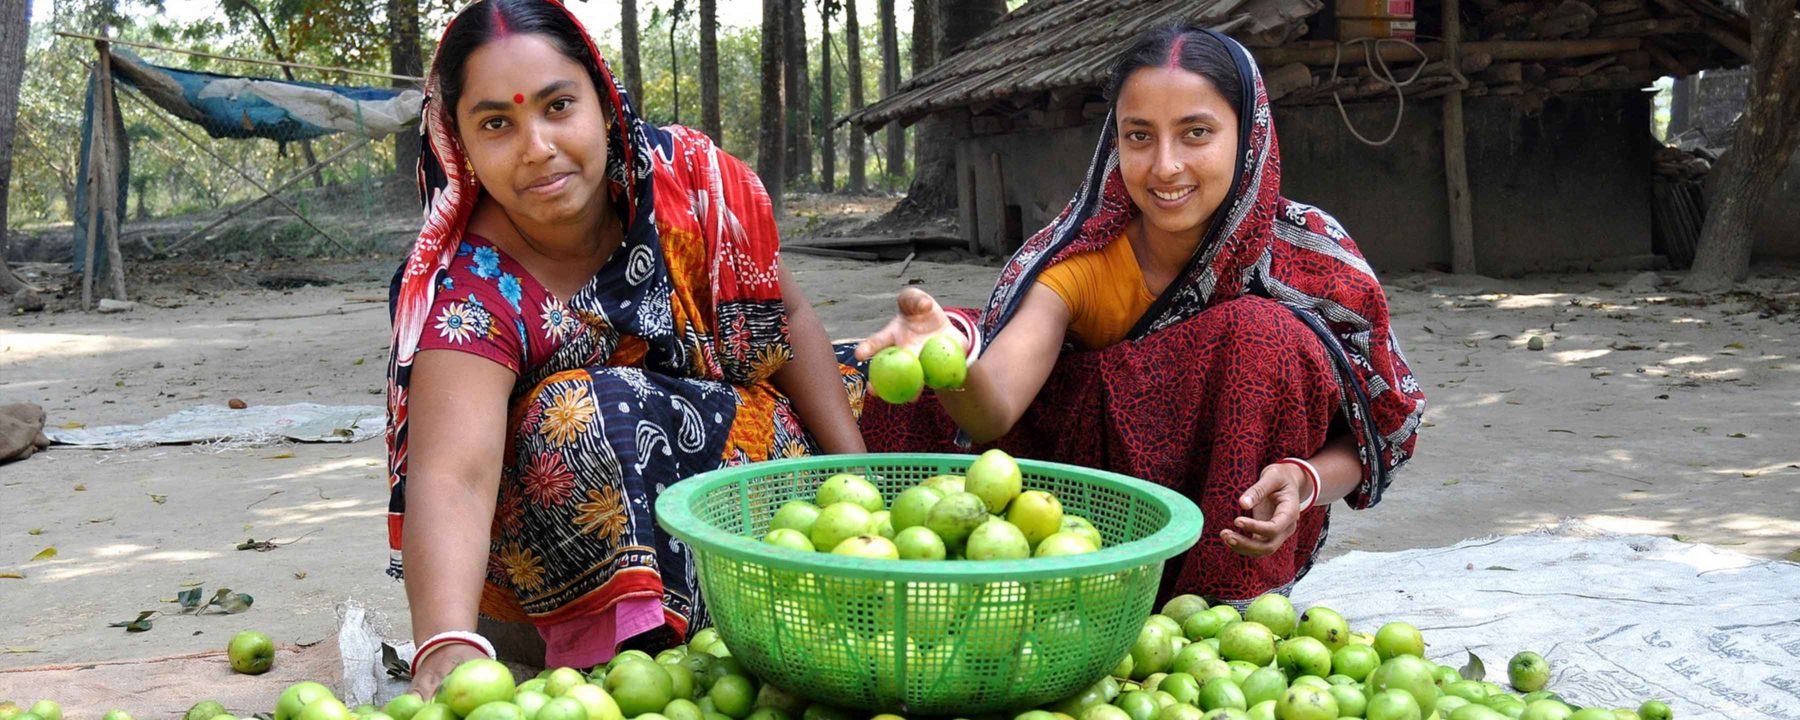 Women sorting plums in Bangladesh